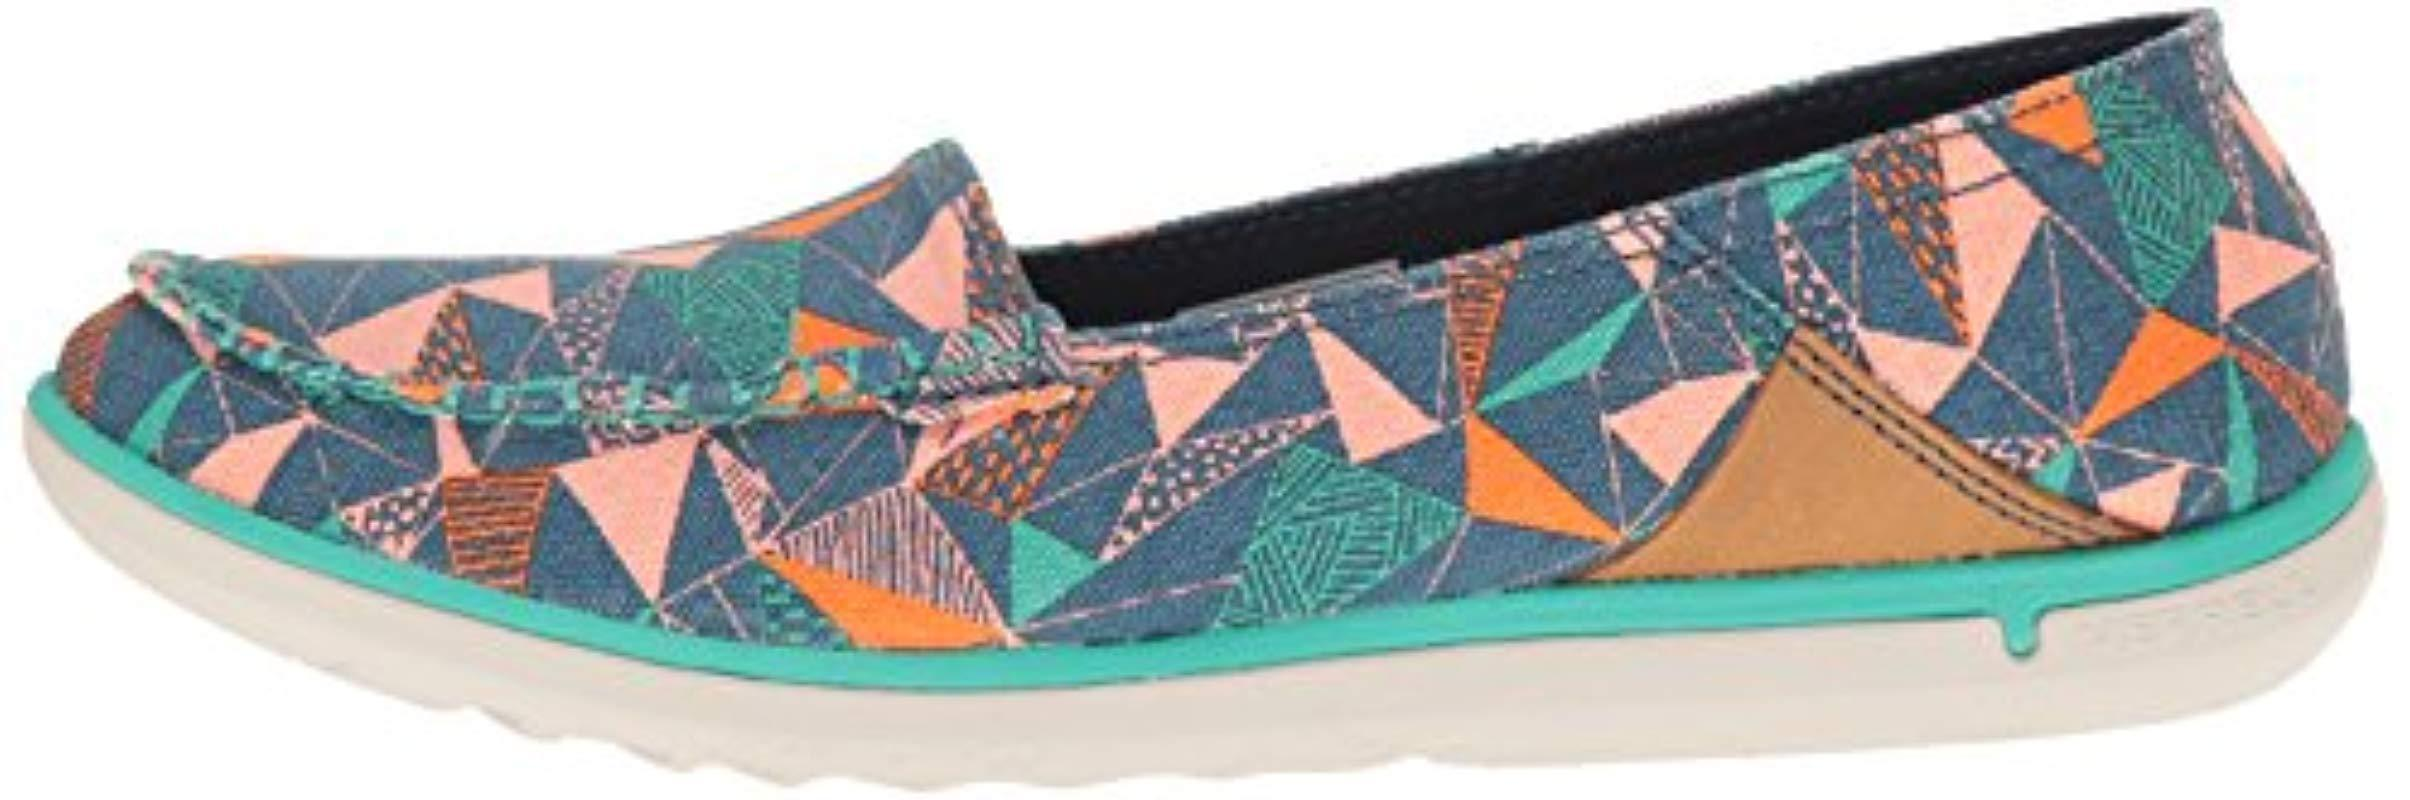 Merrell Canvas Duskair Moc Print Fashion Sneaker in Blue